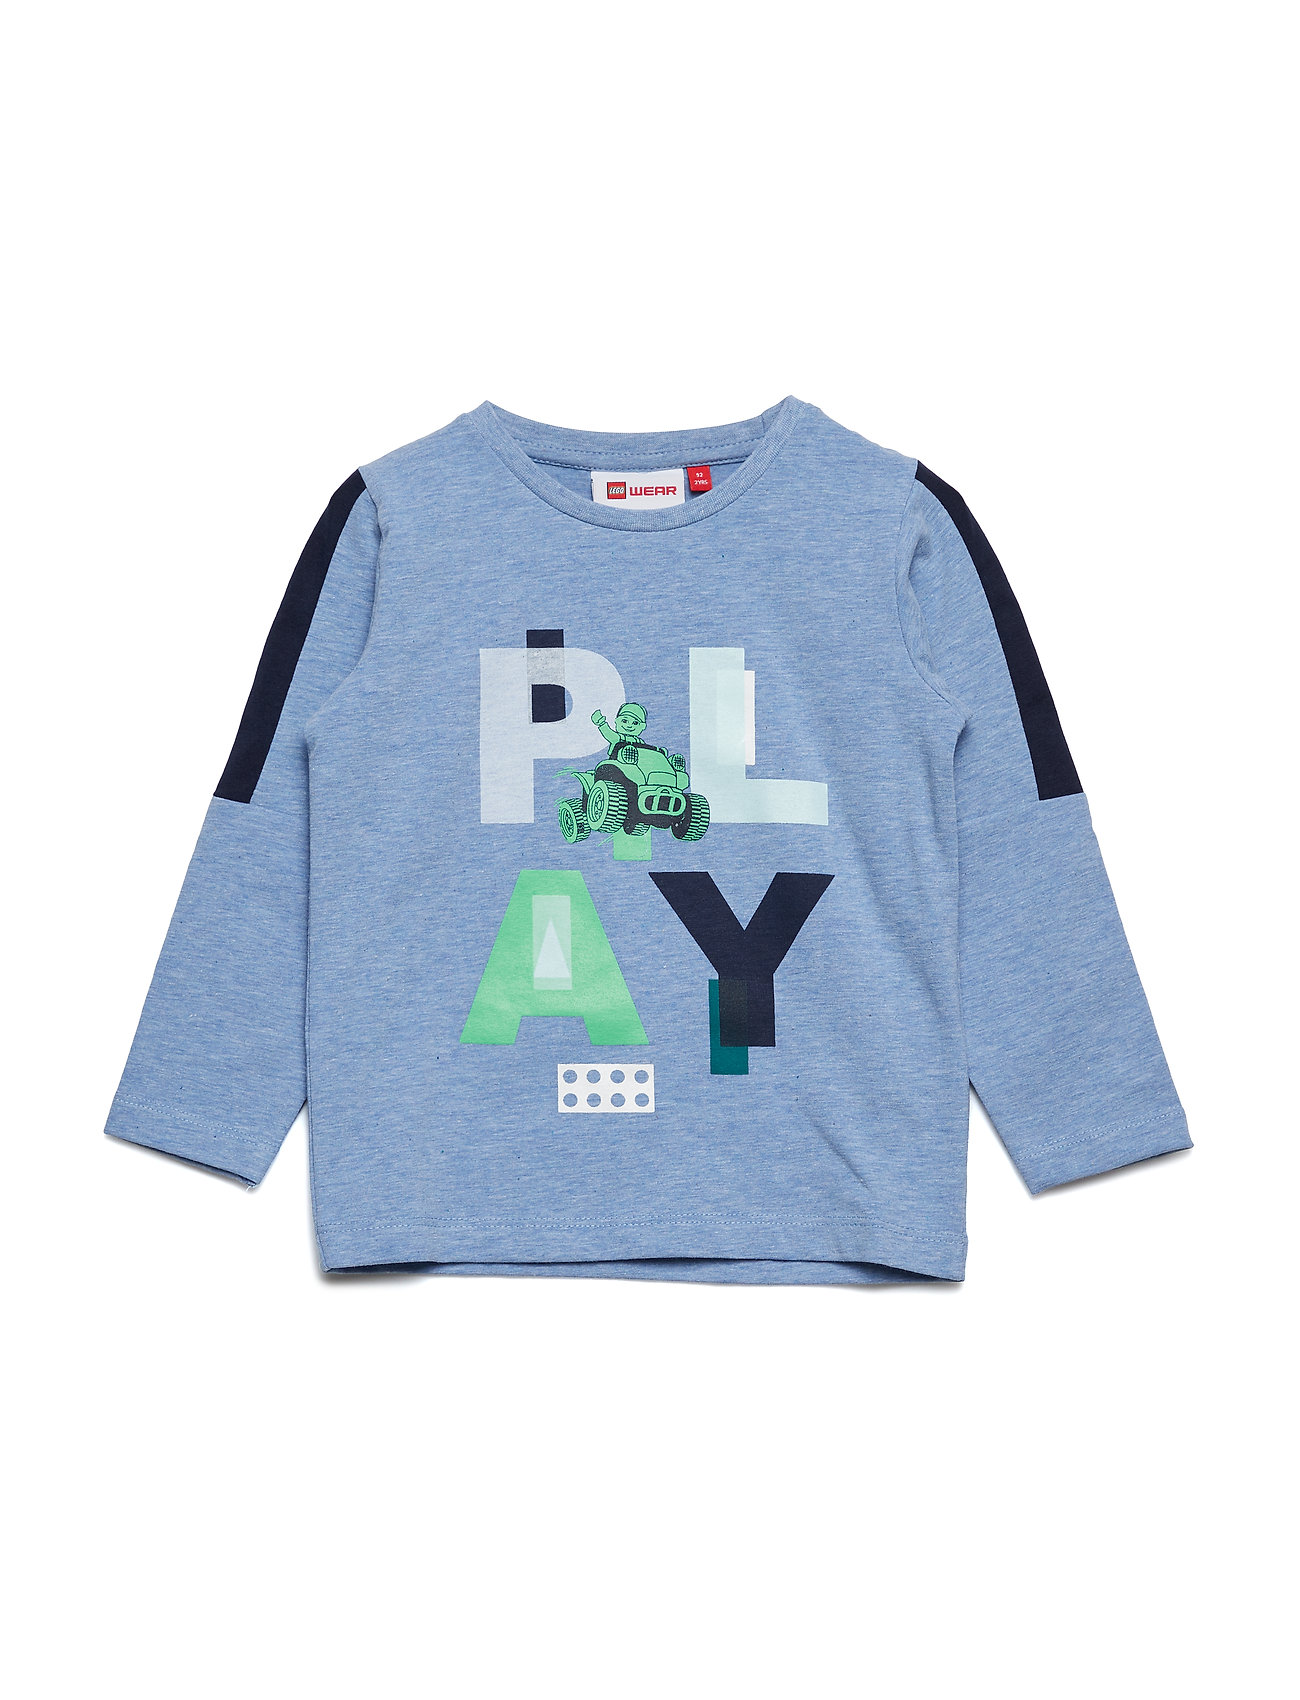 Lego wear TERRENCE 102 - T-SHIRT L/S - BLUE